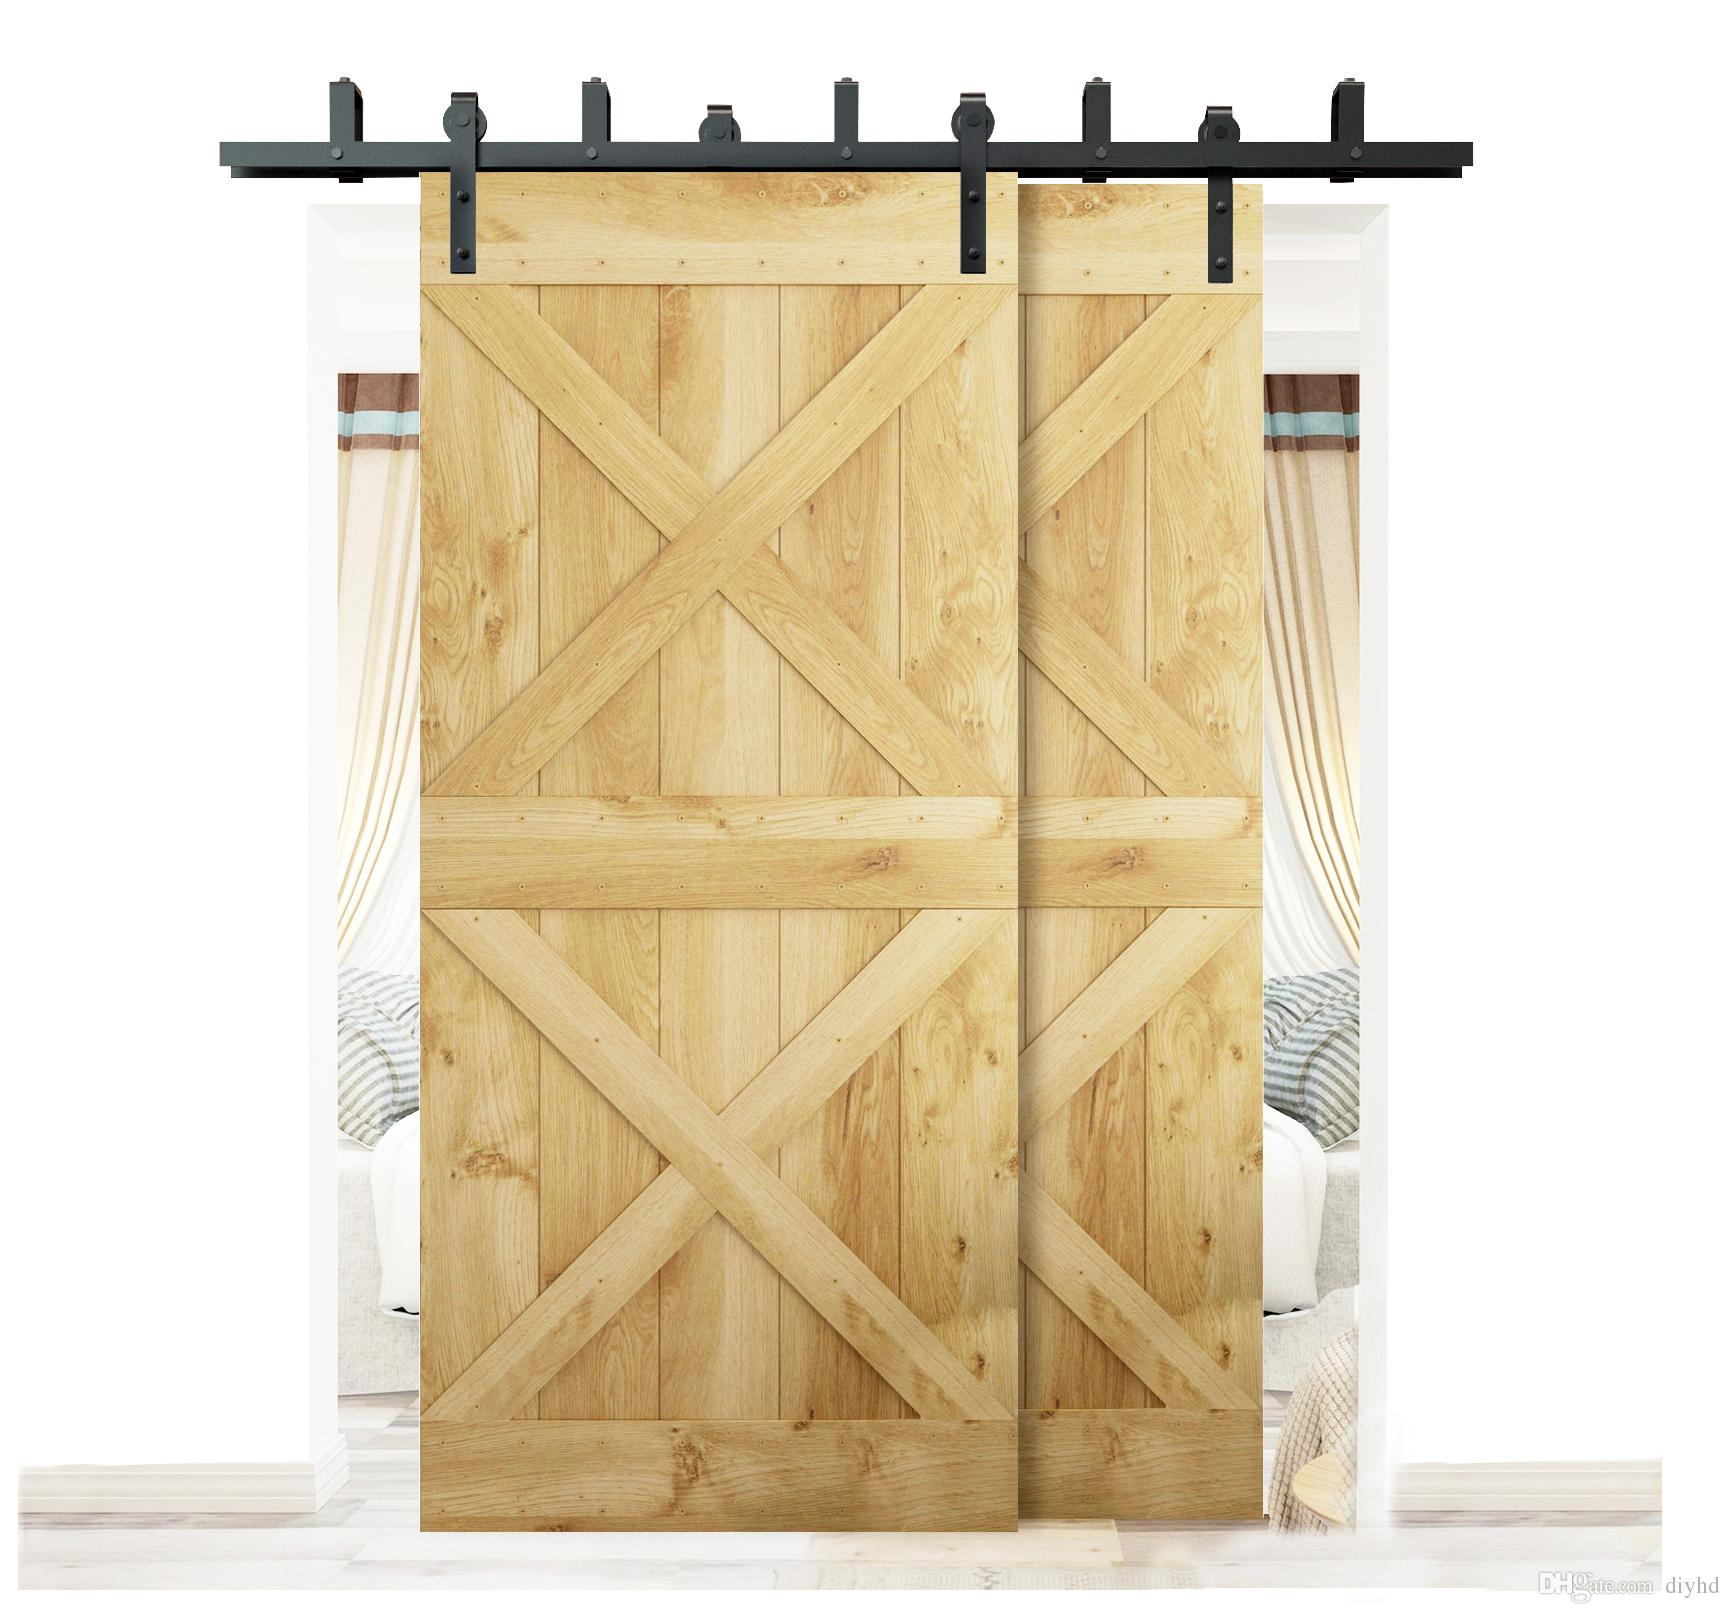 2018 5.5ft/6ft Bypass Sliding Barn Wood Closet Door Interior Sliding Door  Bent Straight Wheel Hardware Track Kit From Diyhd, $145.73 | Dhgate.Com